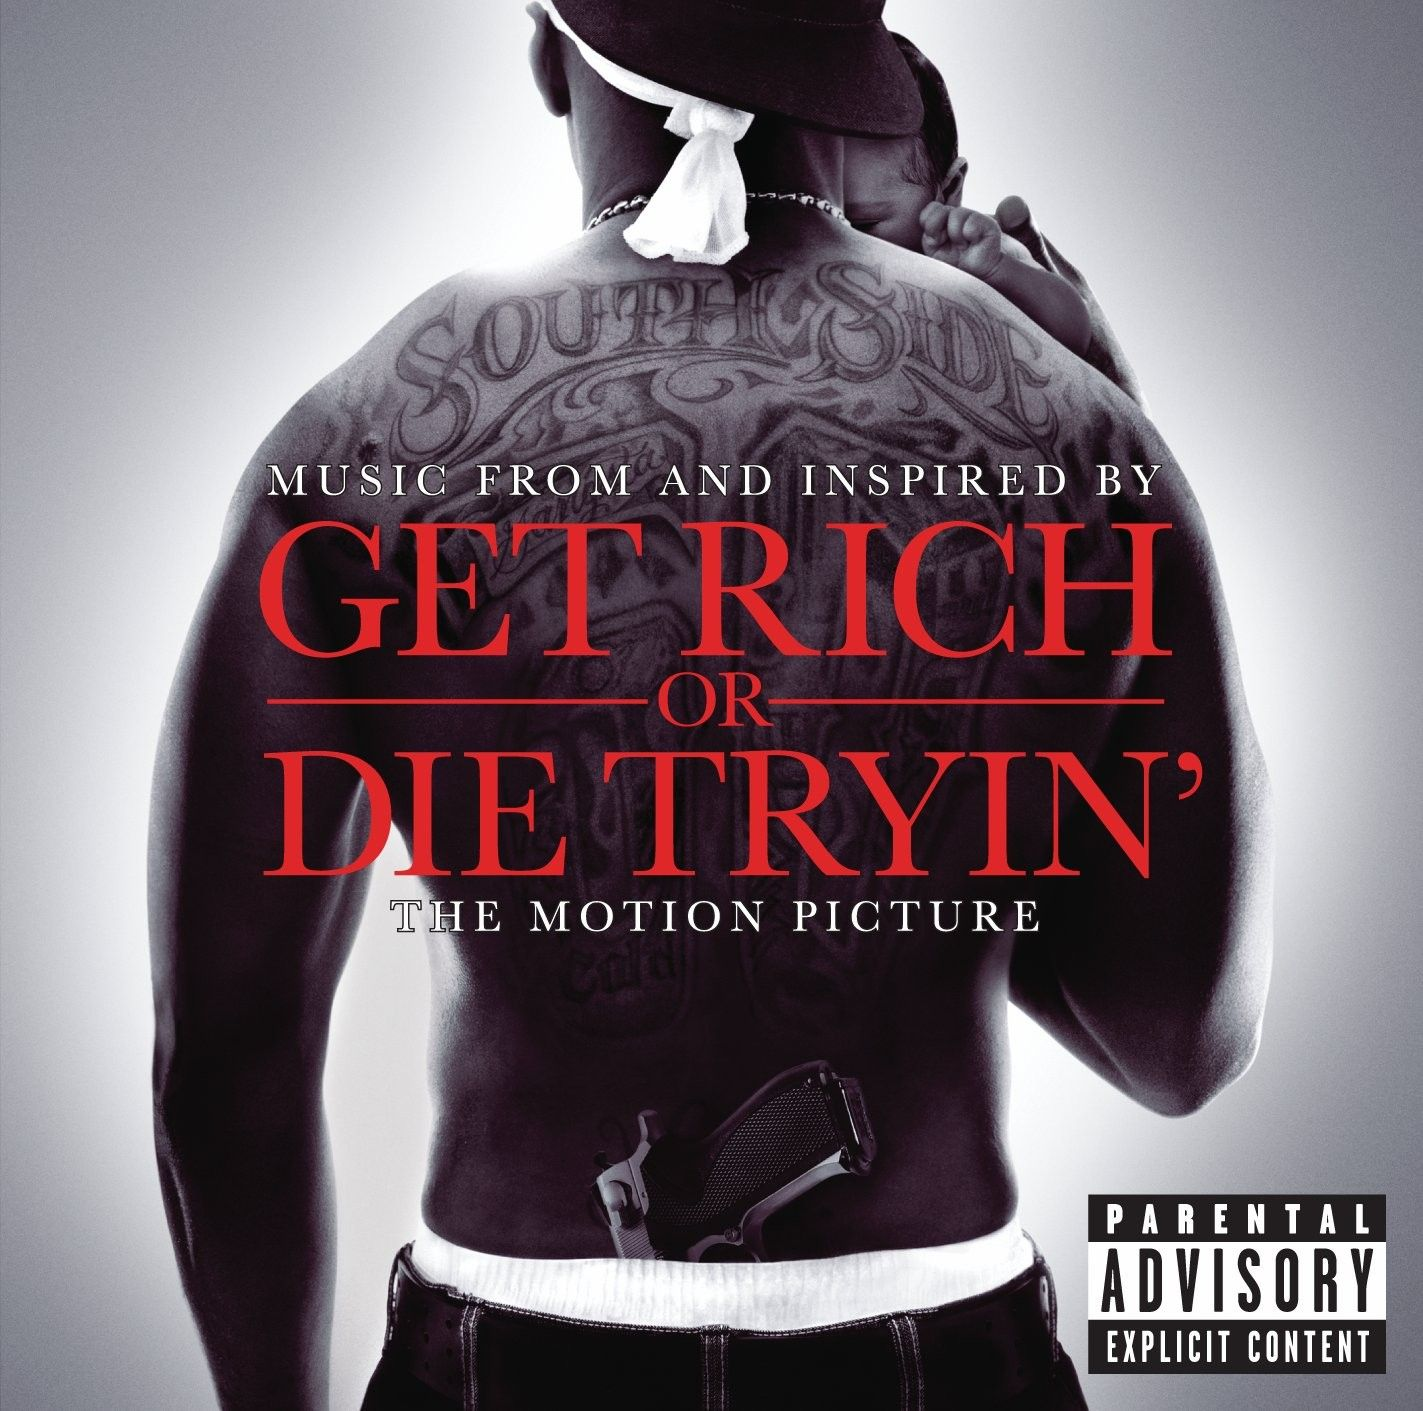 Soundtrack - Get Rich Or Die Tryin' album cover